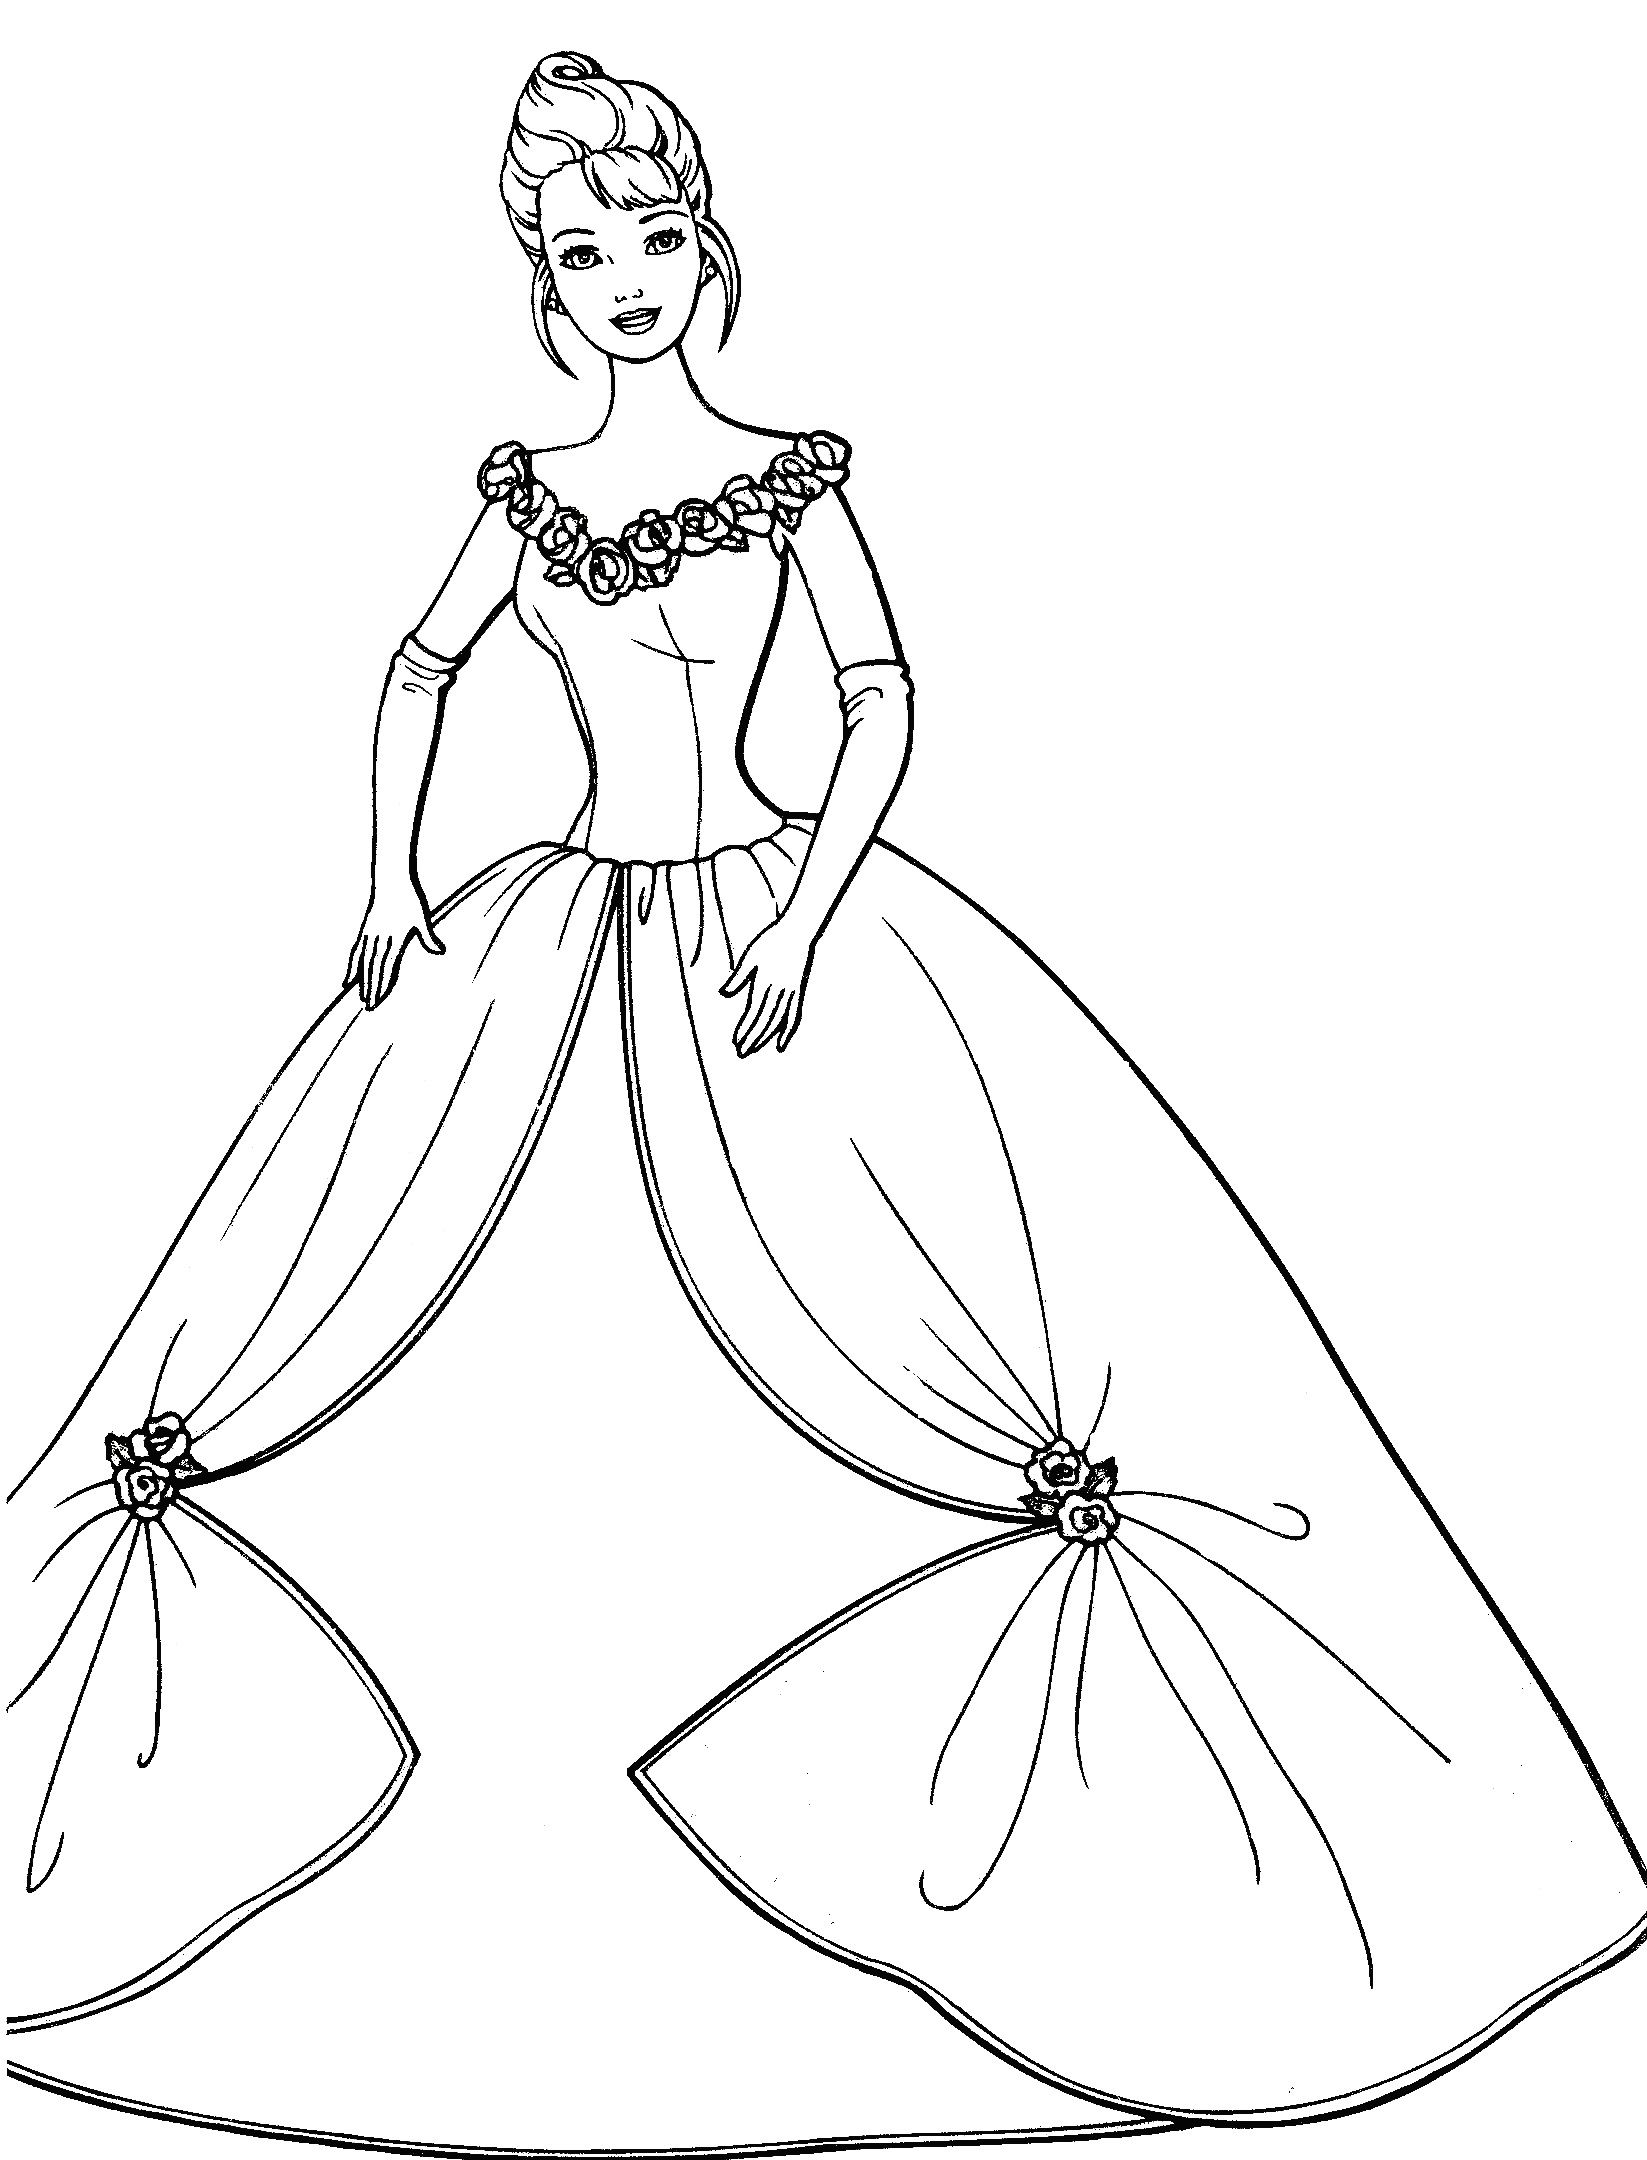 Pin by Tsvetelina on Barbie coloring | Barbie coloring ...